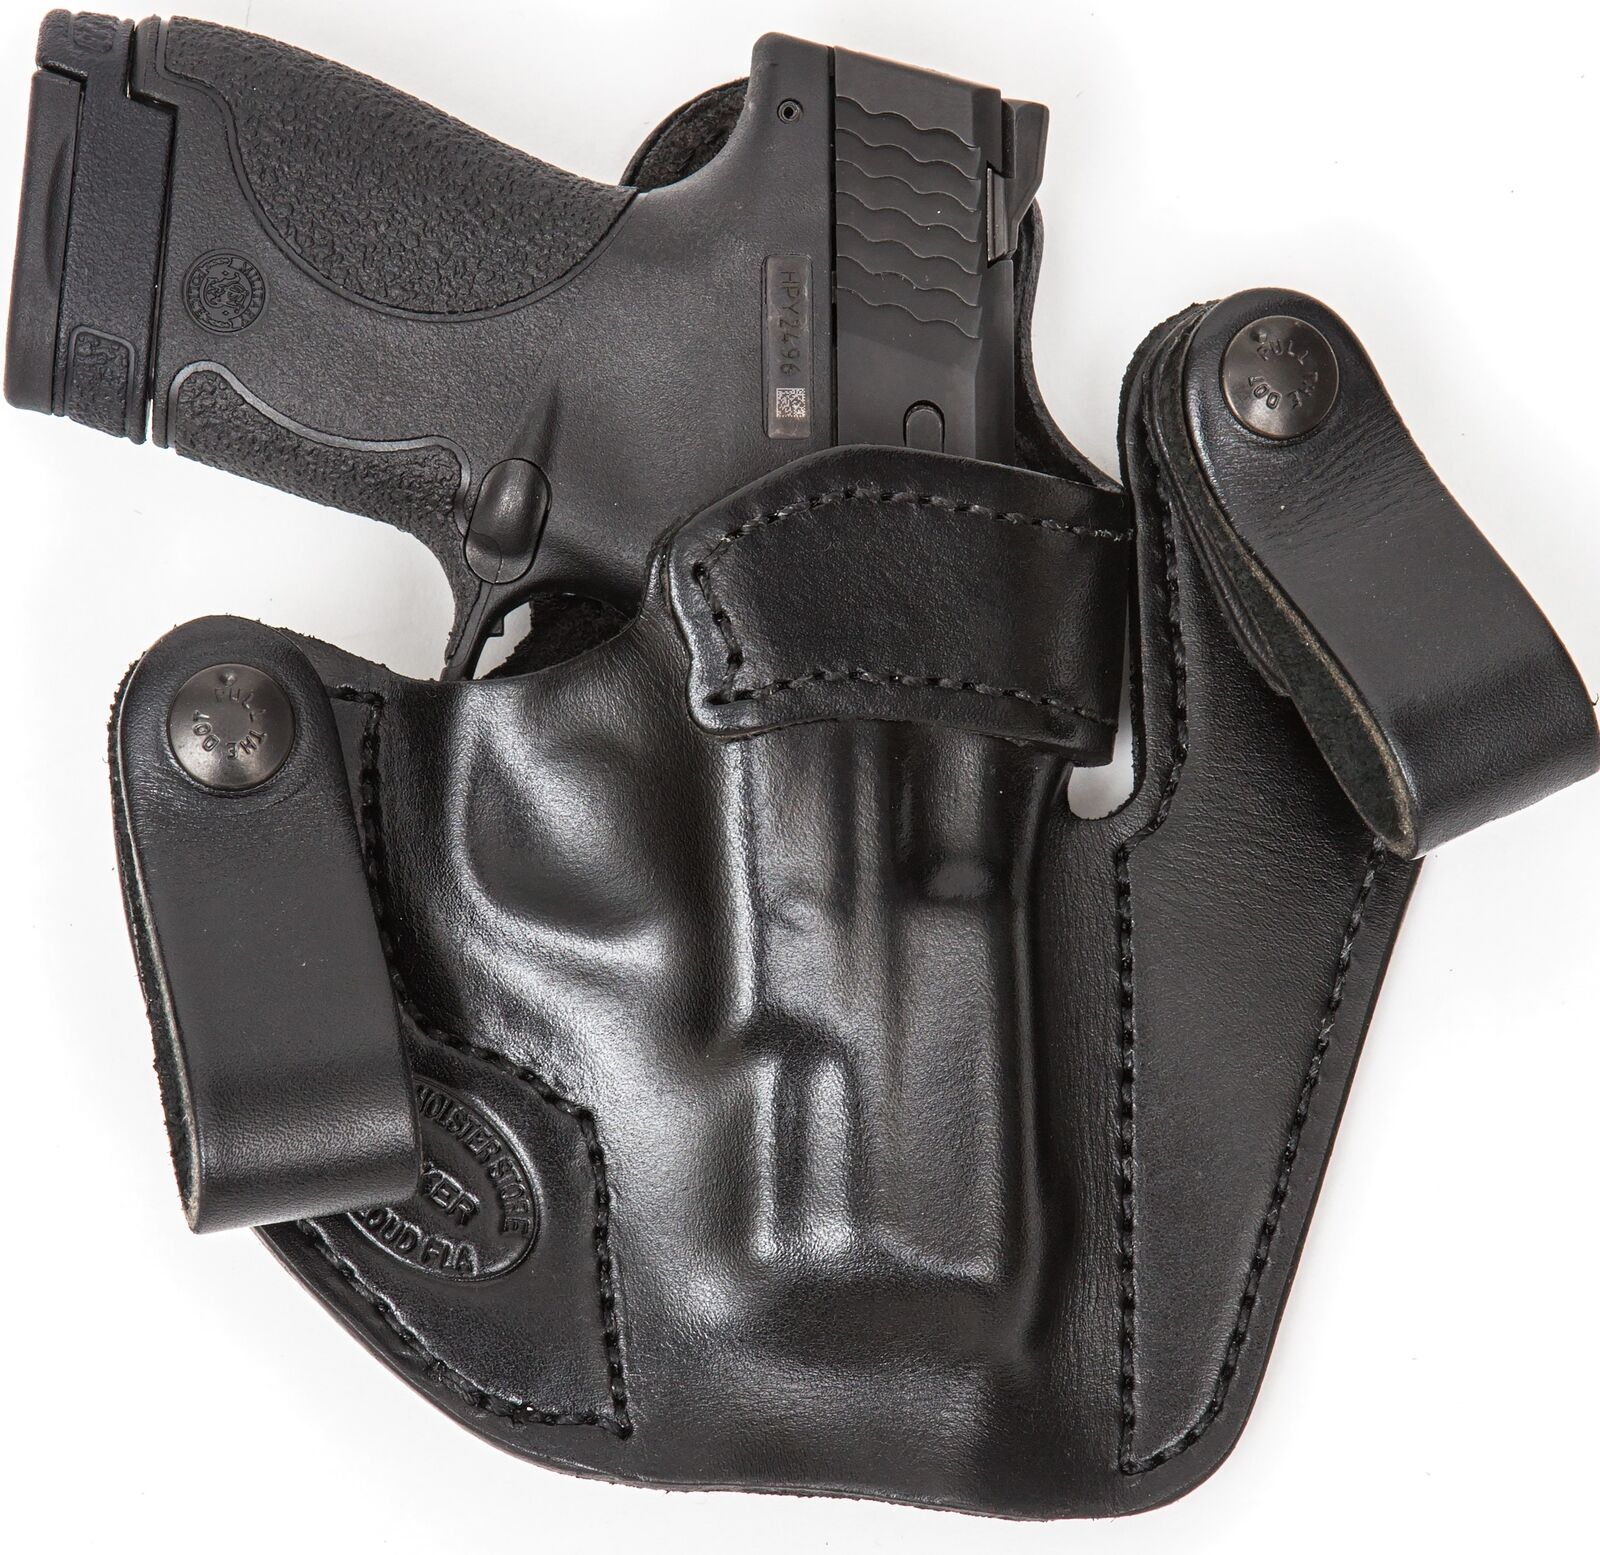 XTREME CARRY RH LH IWB Leather Gun Holster For Walther PPQ 5